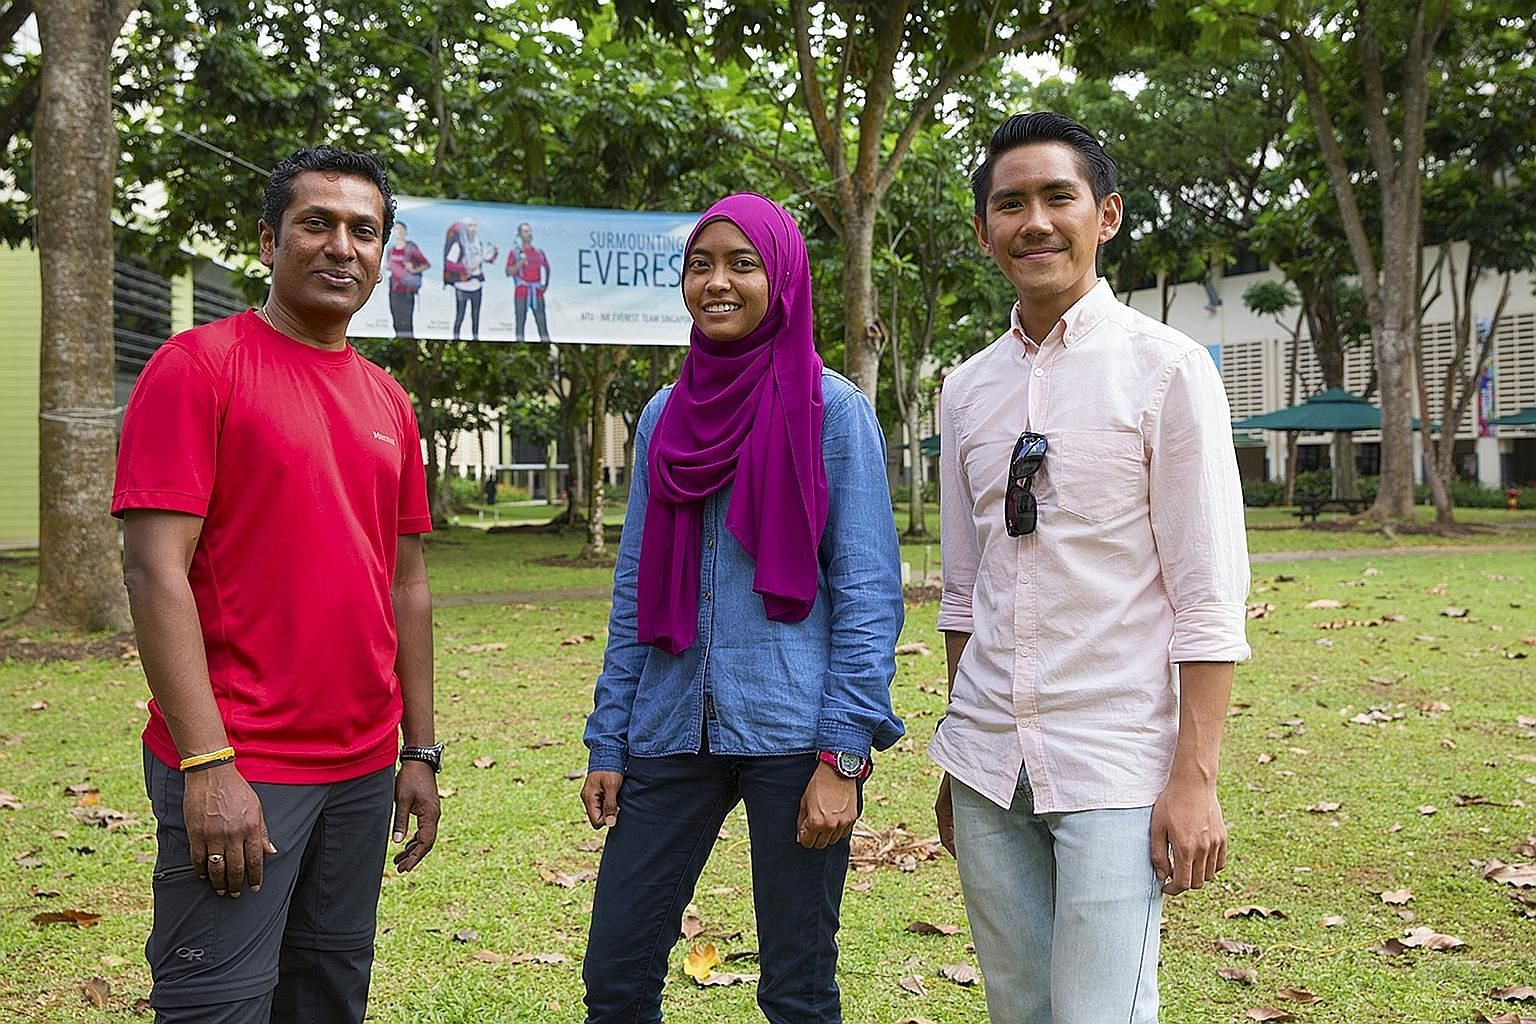 NTU-NIE Everest Team Singapore members Arjunan Saravana Pillai, 47, Nur Yusrina Ya'akob, 30, and Jeremy Tong, 26. Ms Yusrina was the only one of the trio who managed to summit Mount Everest last month. Mr Tong is now planning a second bid via the mor